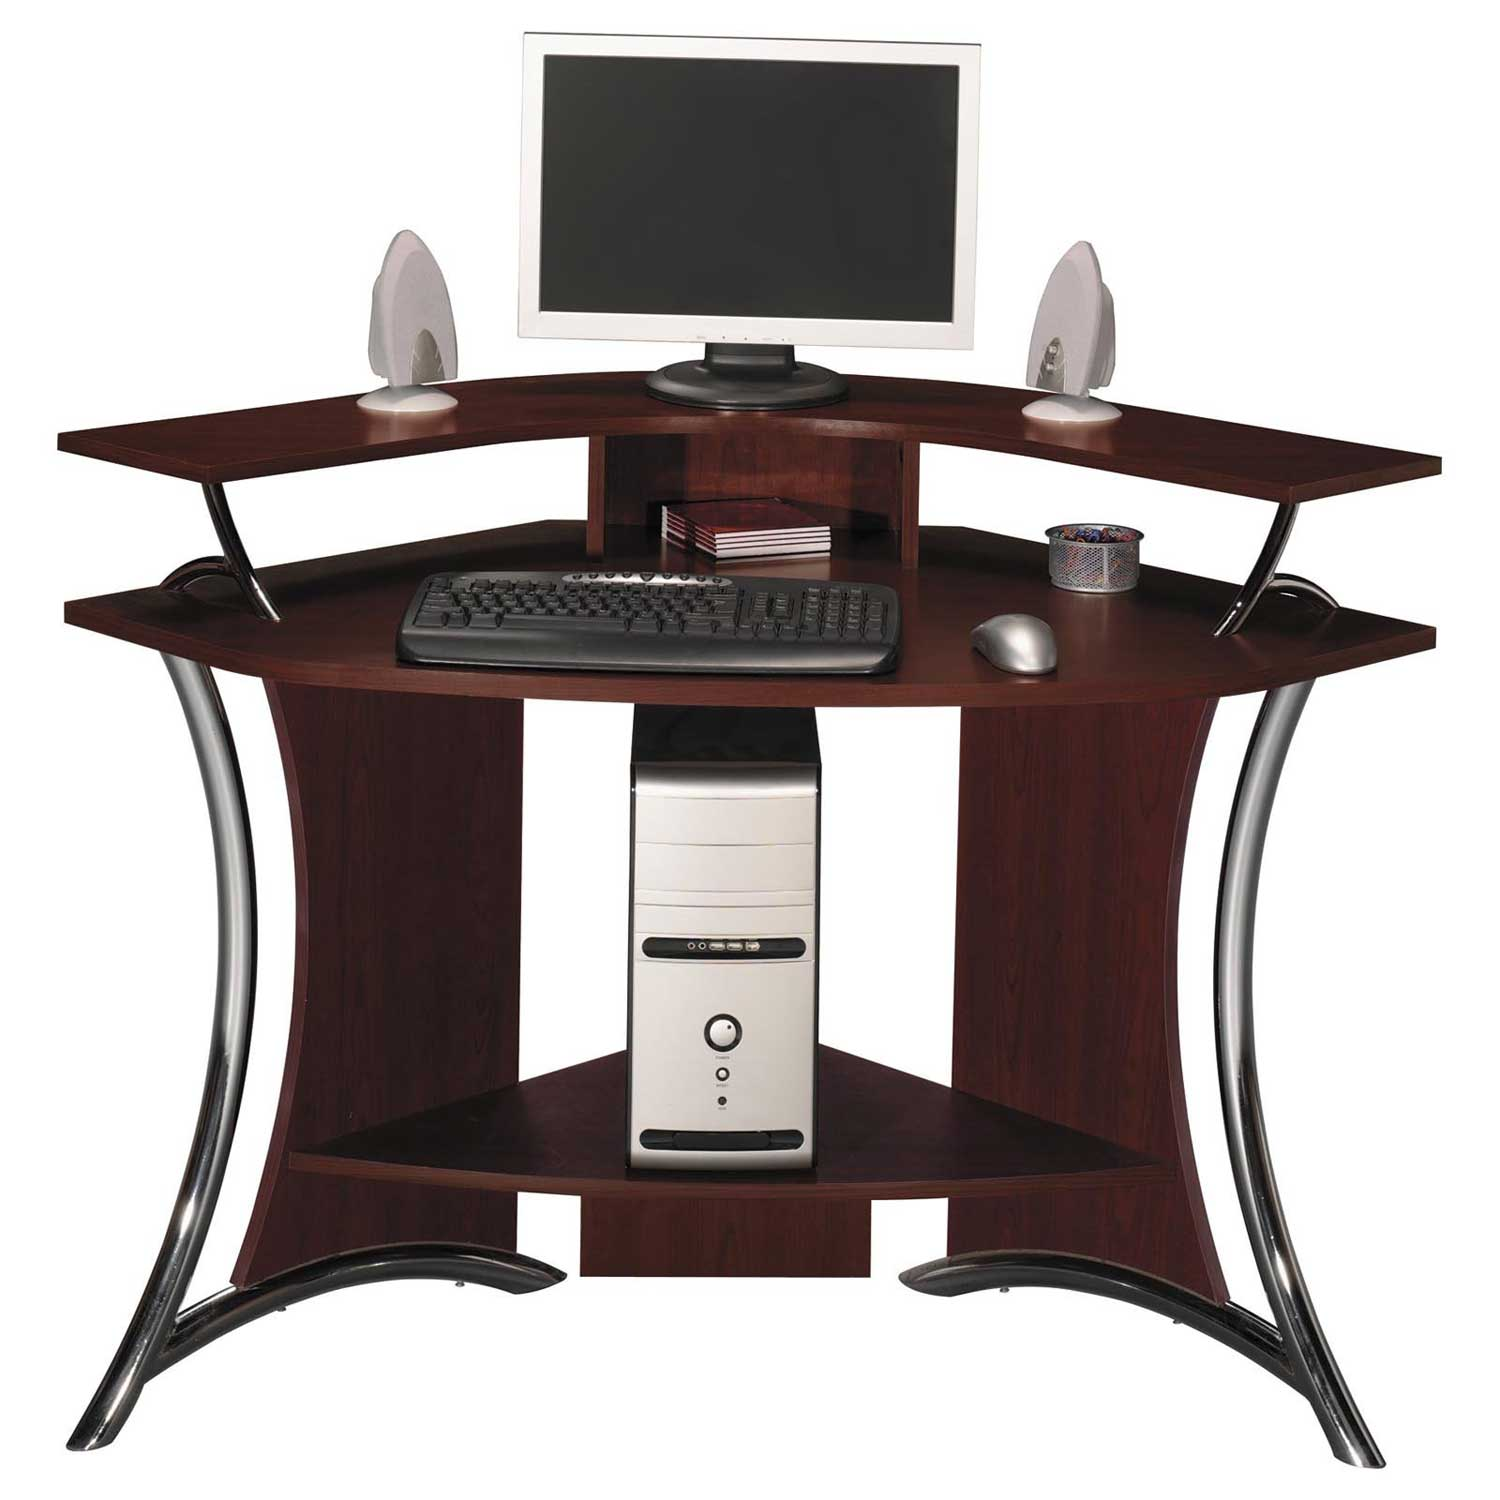 all wood corner desk office furniture. Black Bedroom Furniture Sets. Home Design Ideas